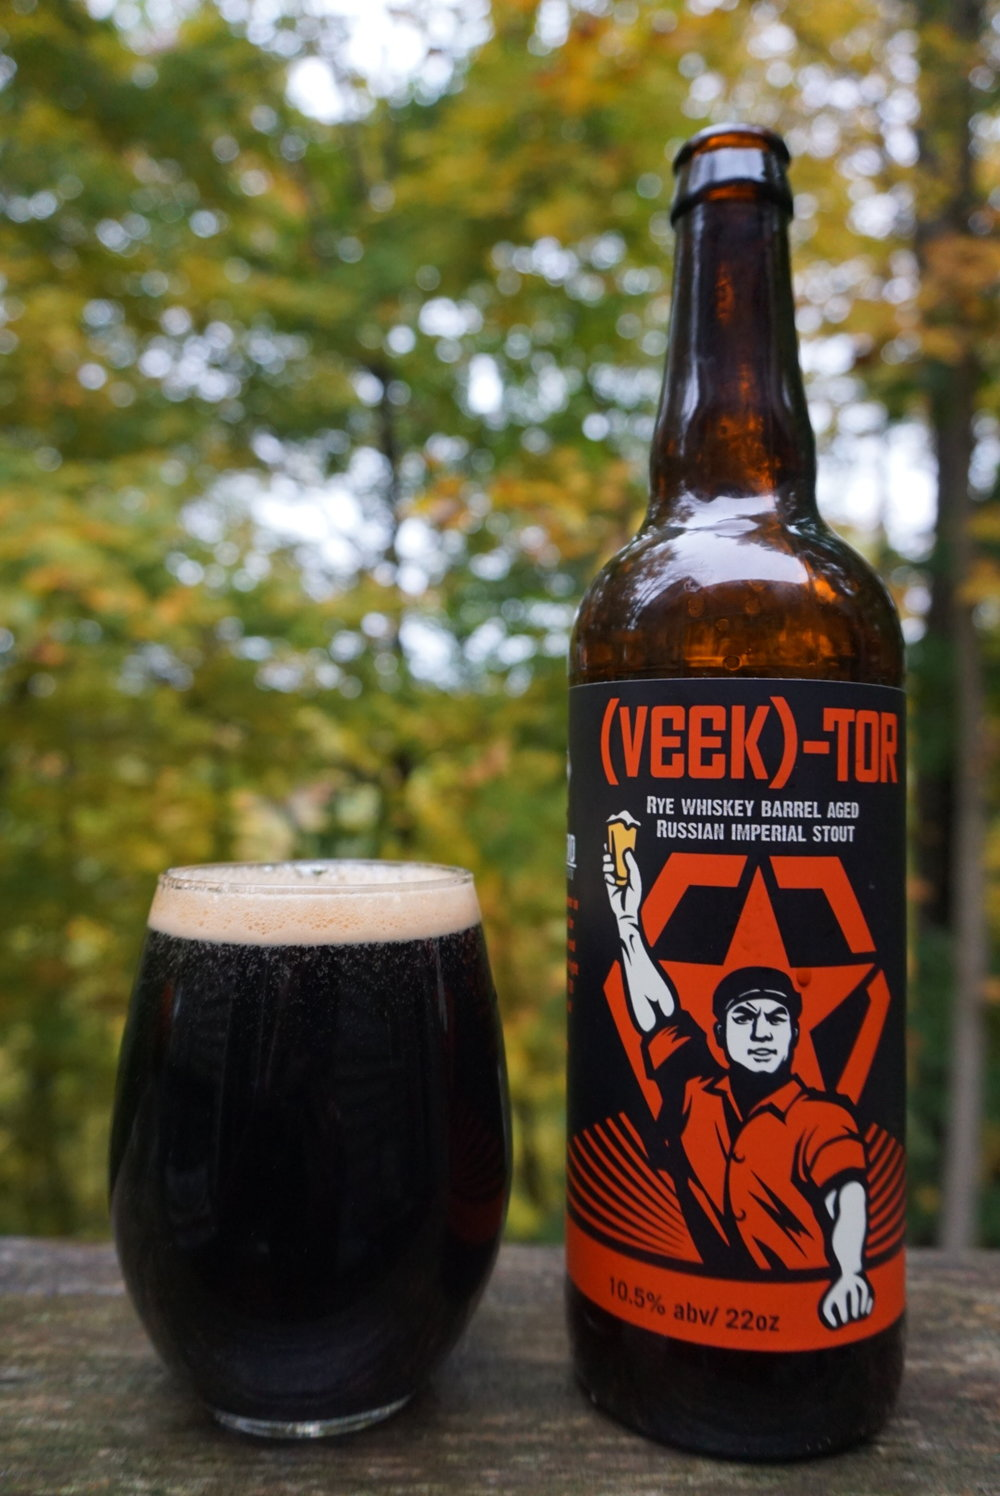 (VEEK)-Tor, Russian Imperial Stout, 10.5% - A Russian Imperial Stout that we allowed to age in our Rye Whiskey barrels. This lends a slight Whiskey character to the beer while still being malty and rich.